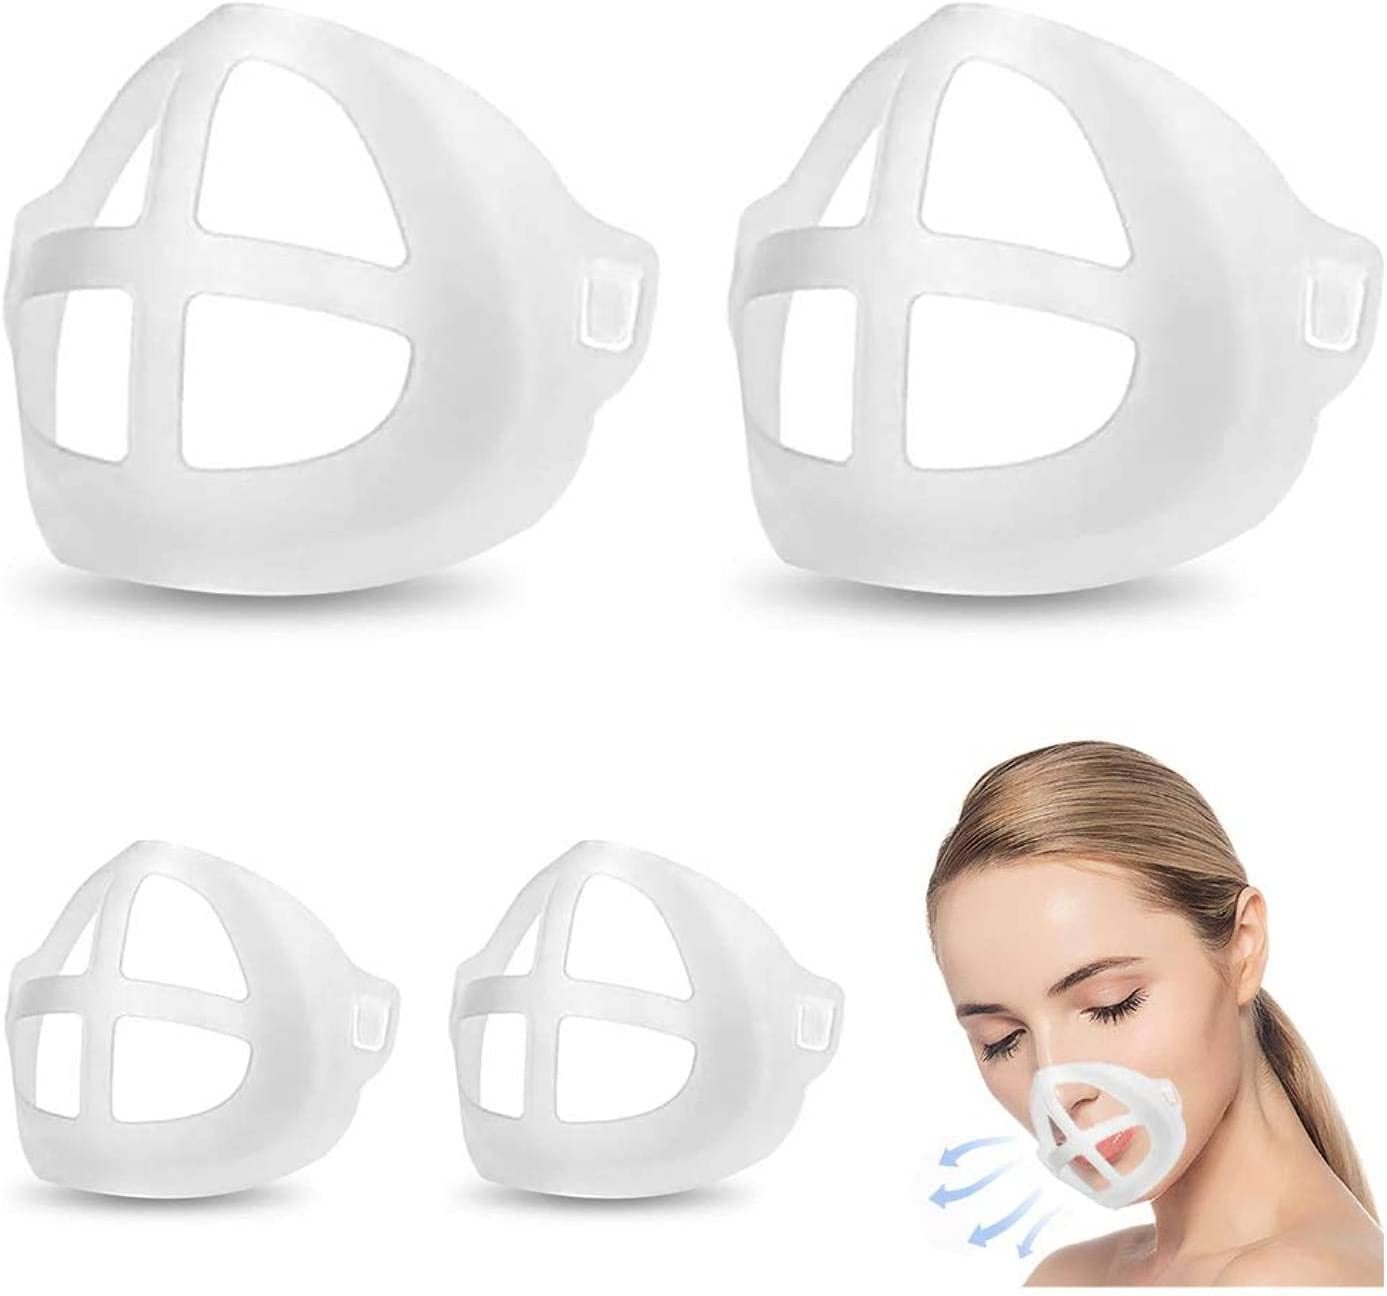 3D Face Inner Support Silicone Internal Max 89% OFF Free Shipping New Frame Reusable